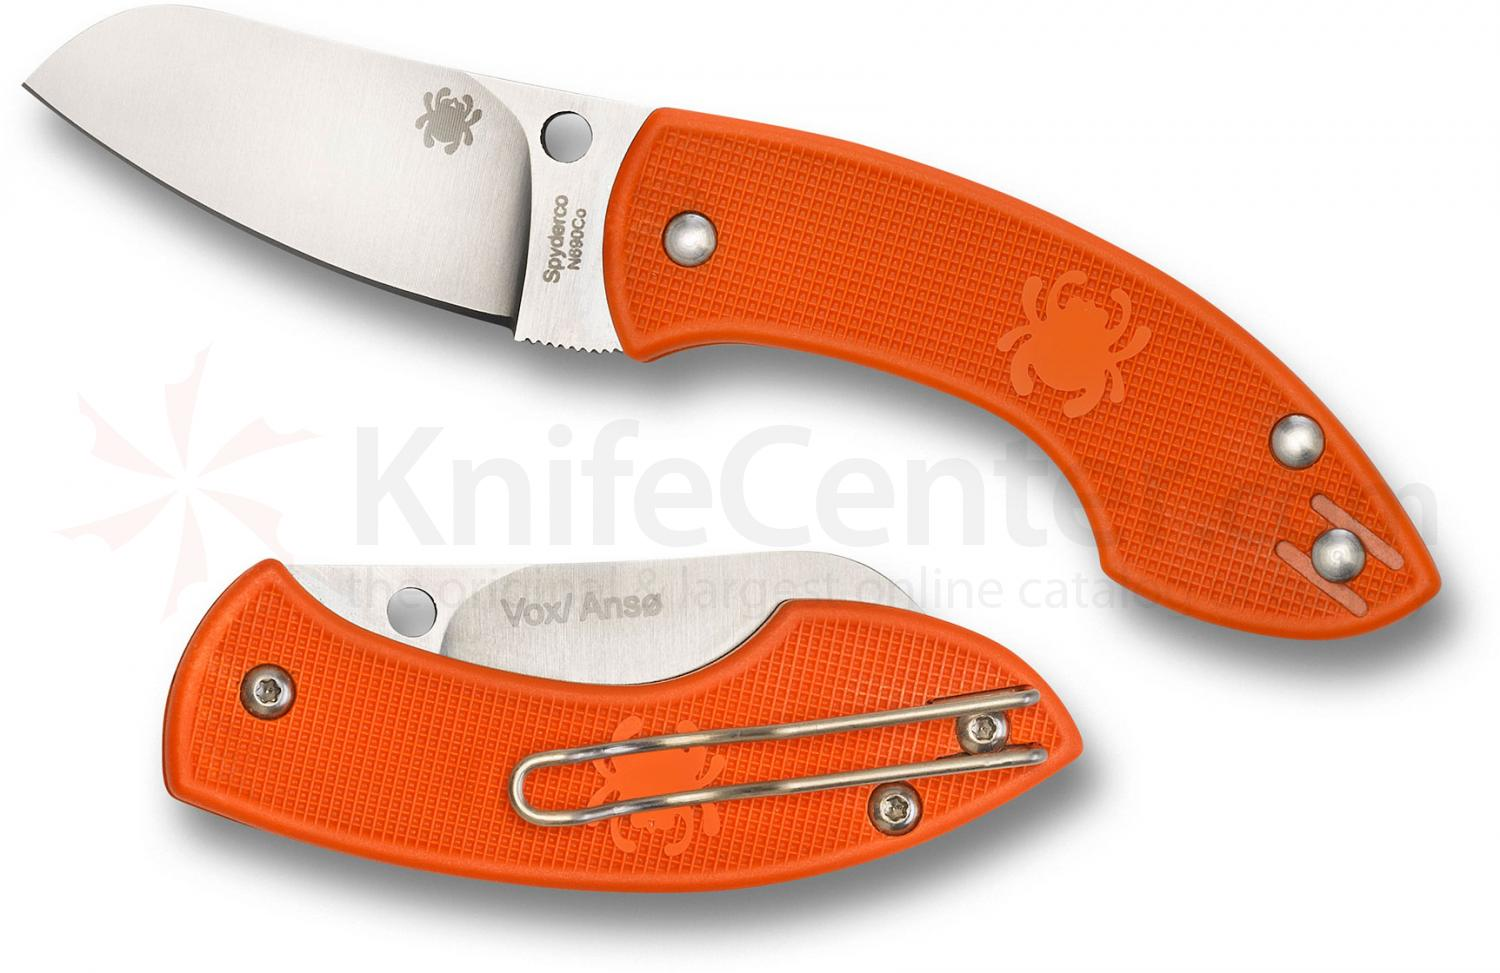 Spyderco C163POR Pingo Folding Knife 2.35 inch Plain N690CO Blade, Orange FRN Handles